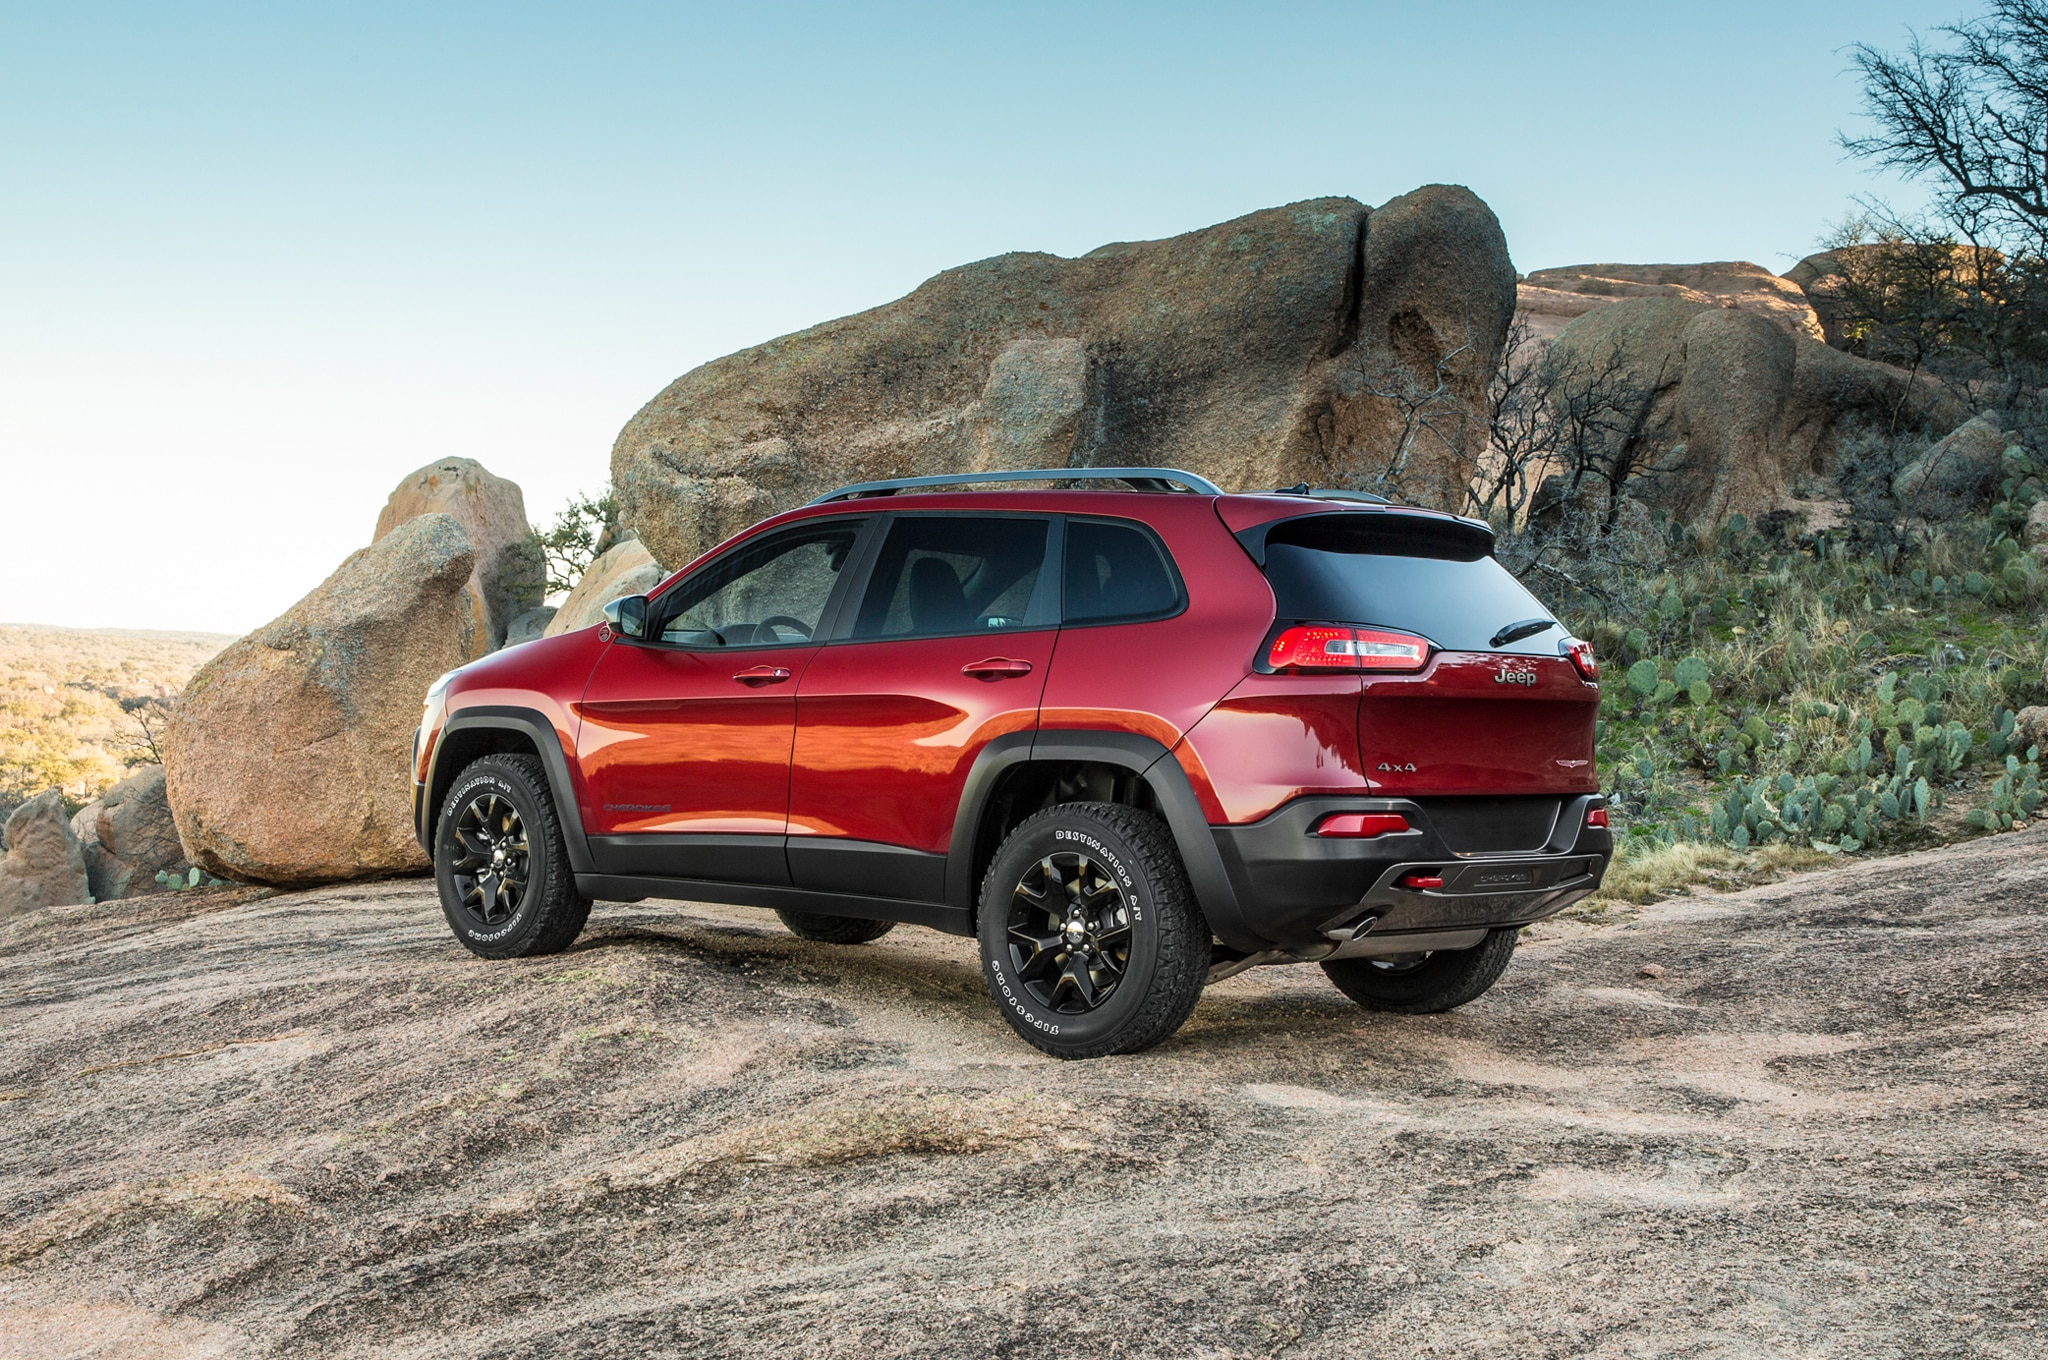 2014 Jeep Cherokee Trailhawk rear three quarter